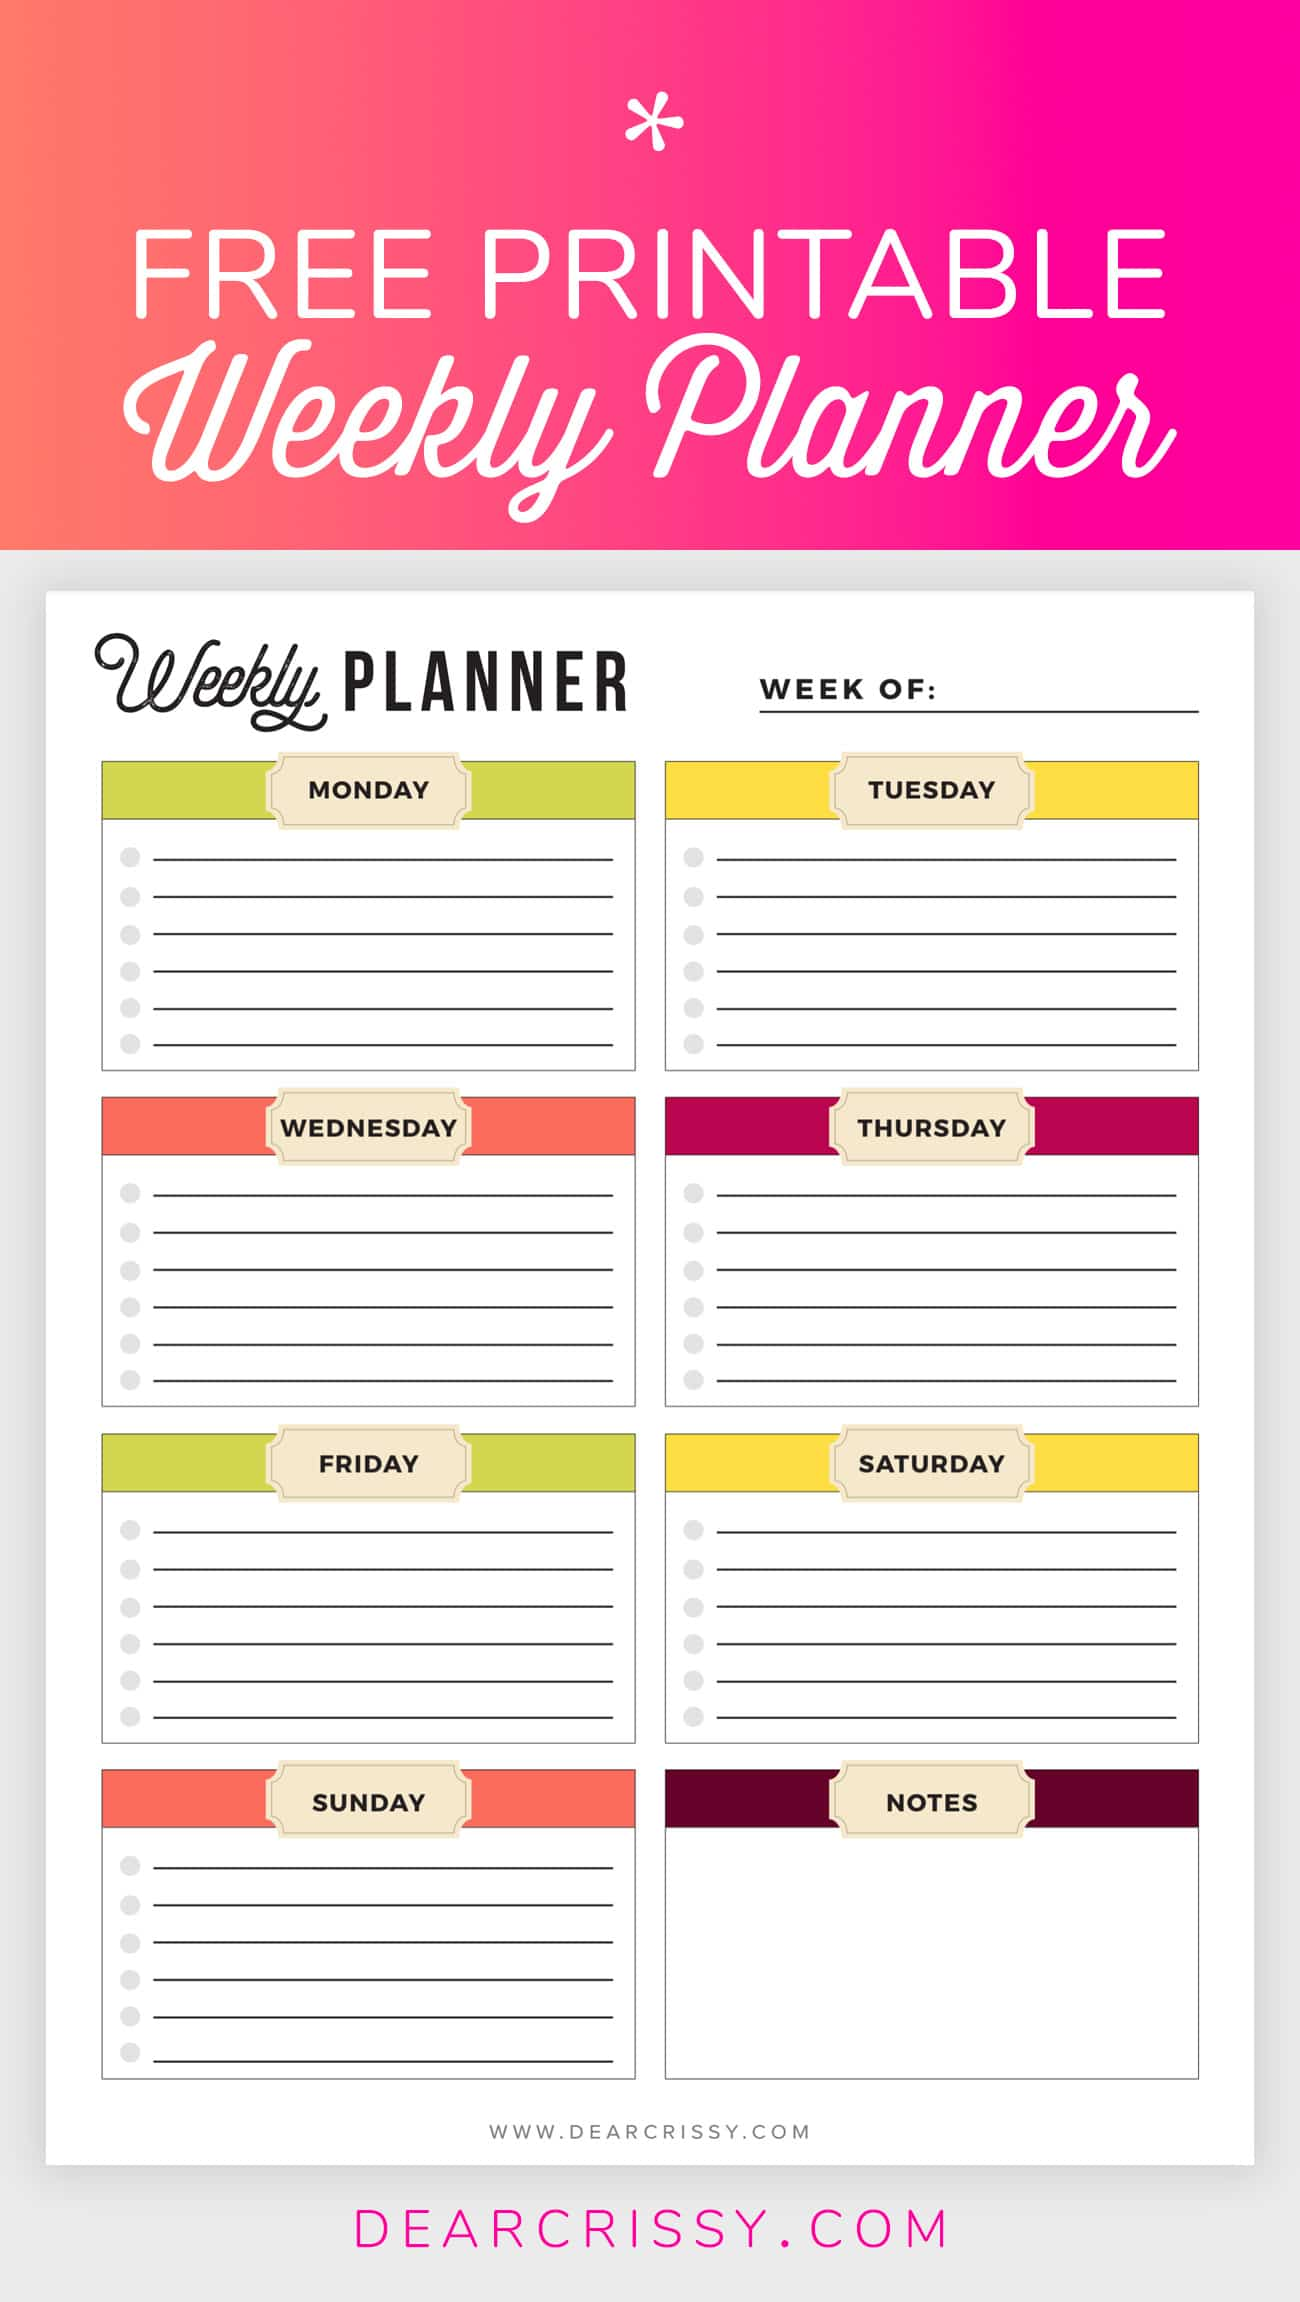 picture regarding Free Weekly Planner Printable called Totally free Printable Weekly Planner - Weekly Planner Printable!